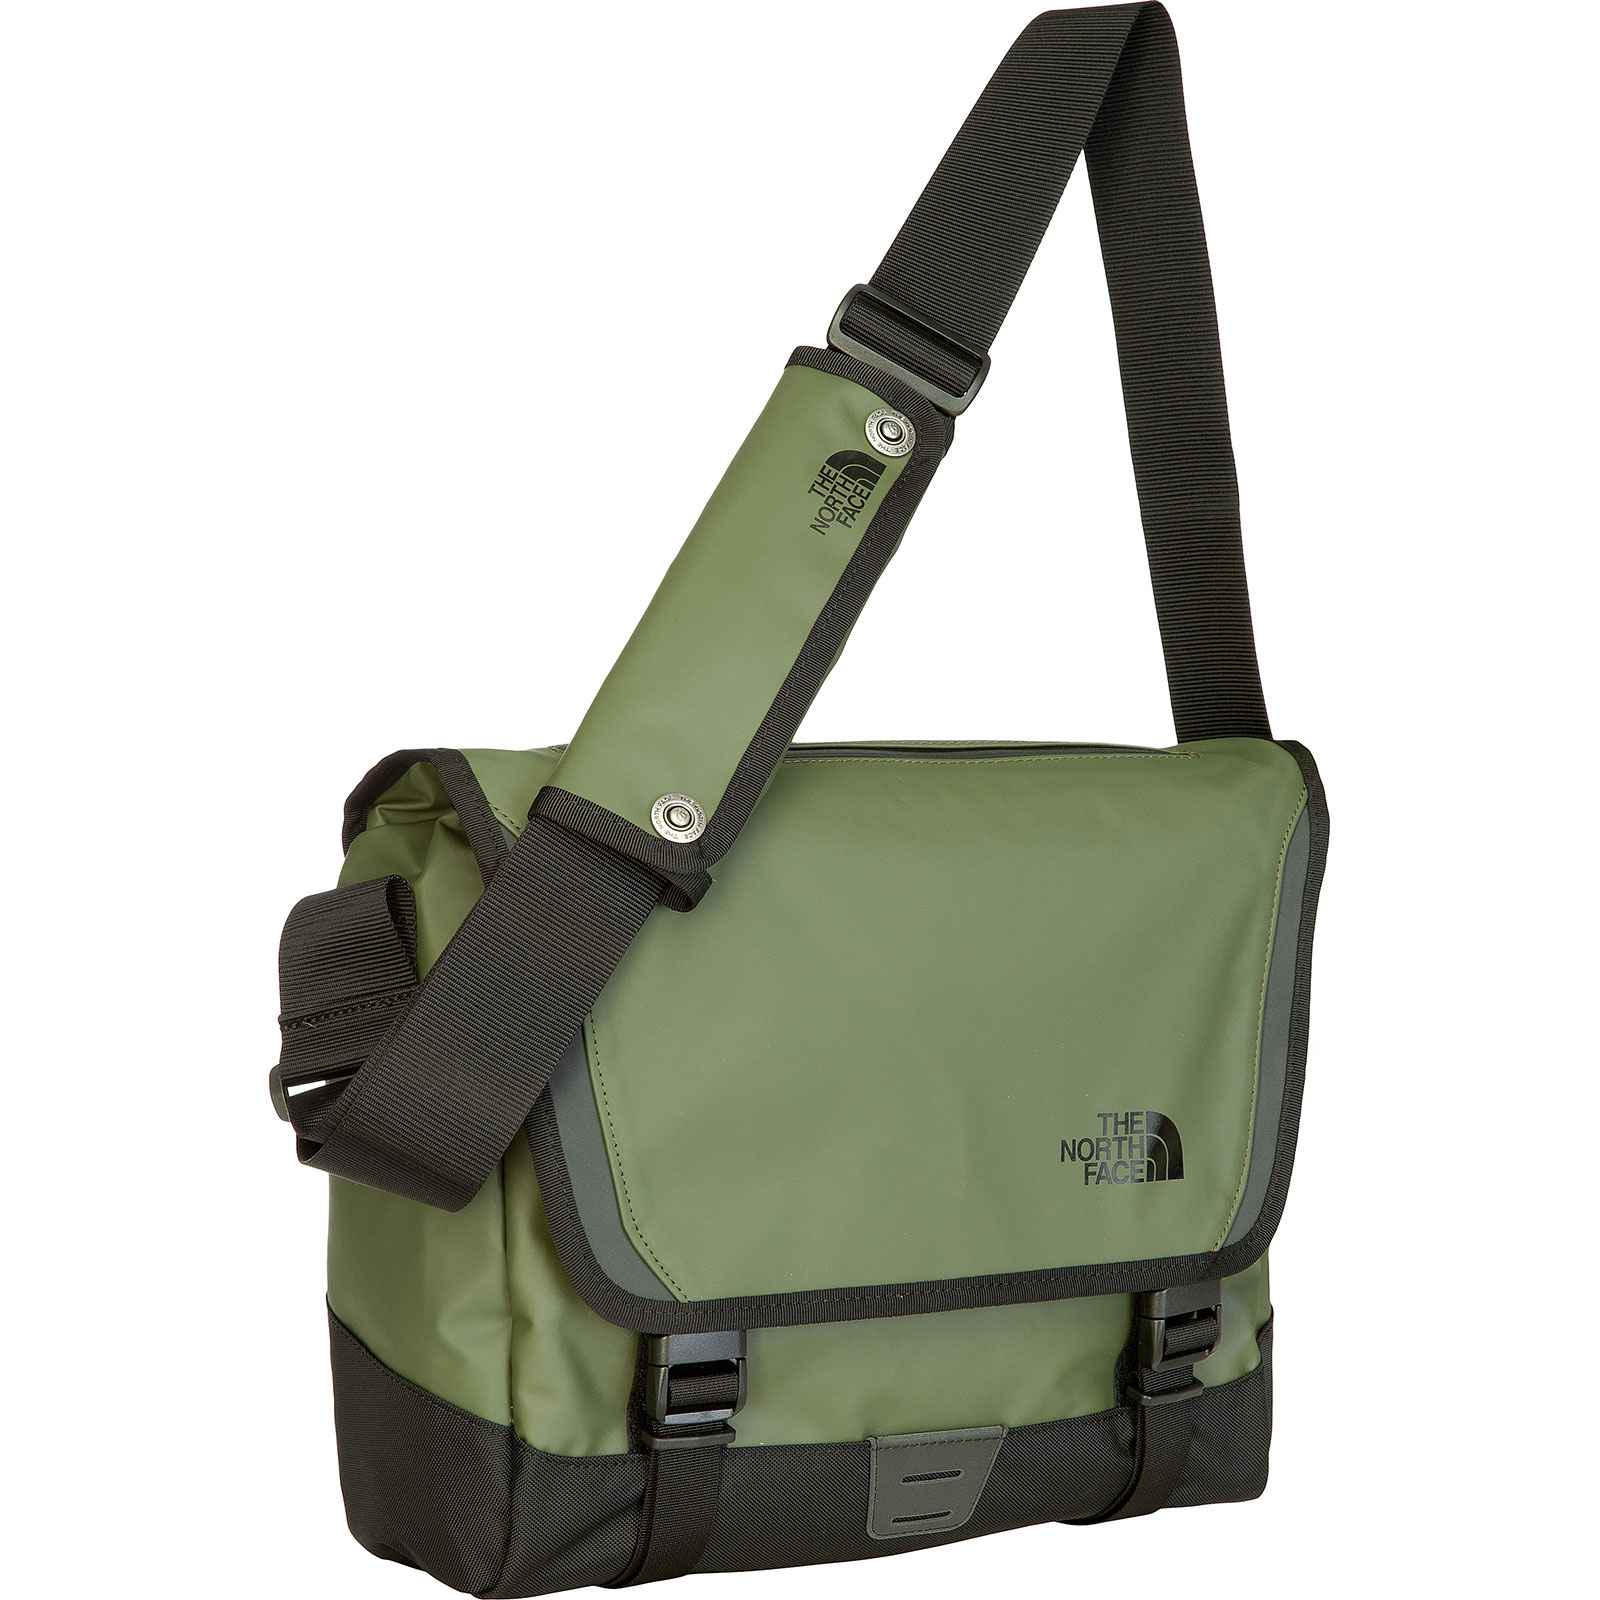 The North Face Schoudertas Base Camp Messenger Bag : K?p the north face base camp messenger bag s hos outnorth